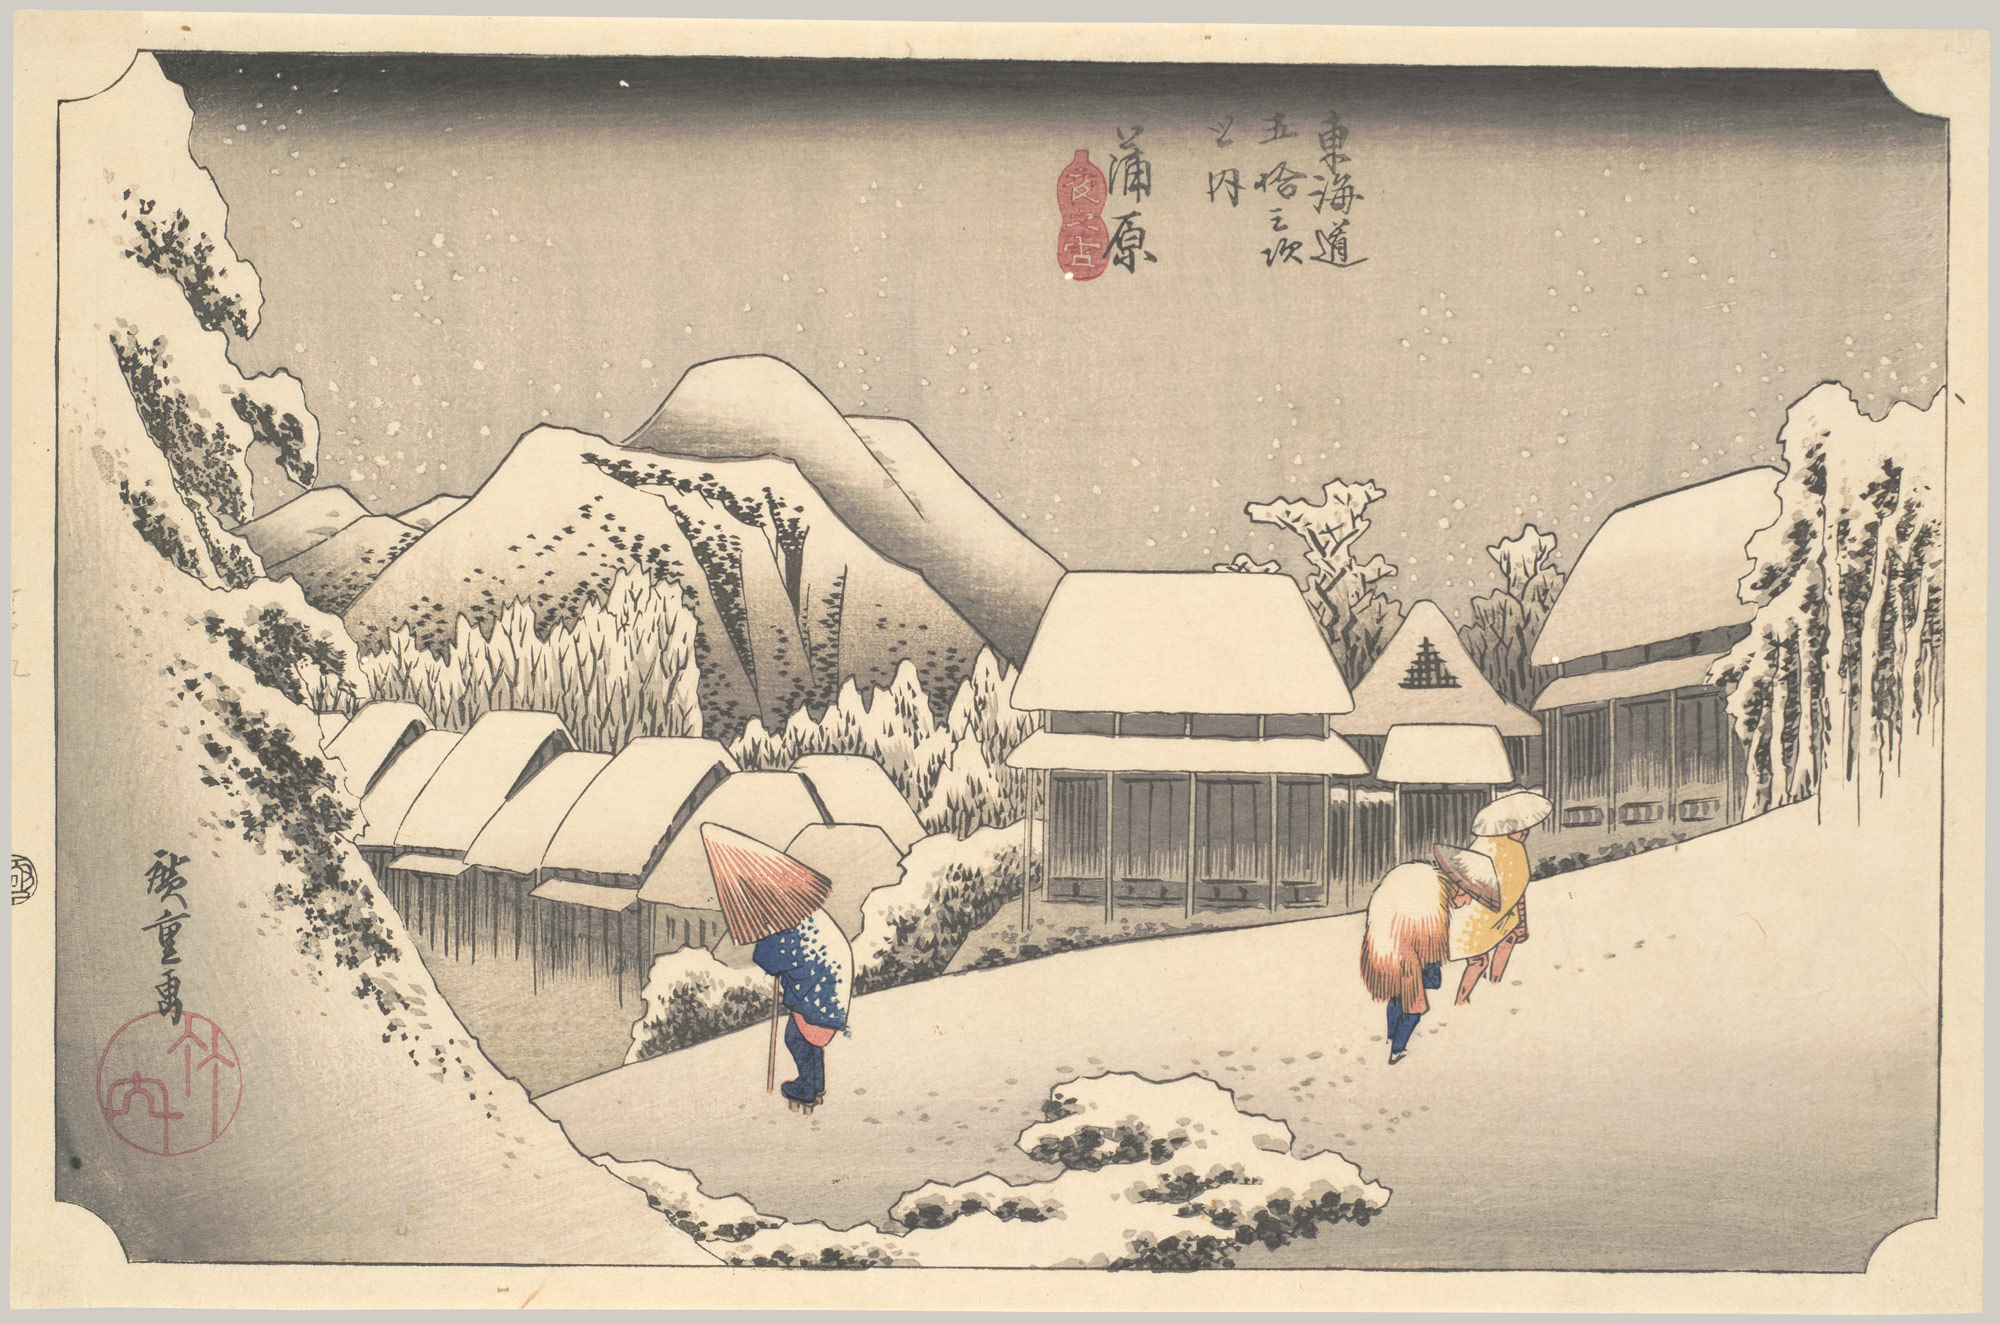 Evening Snow at Kanbara, from the series Fifty-three Stations of the Tōkaidō